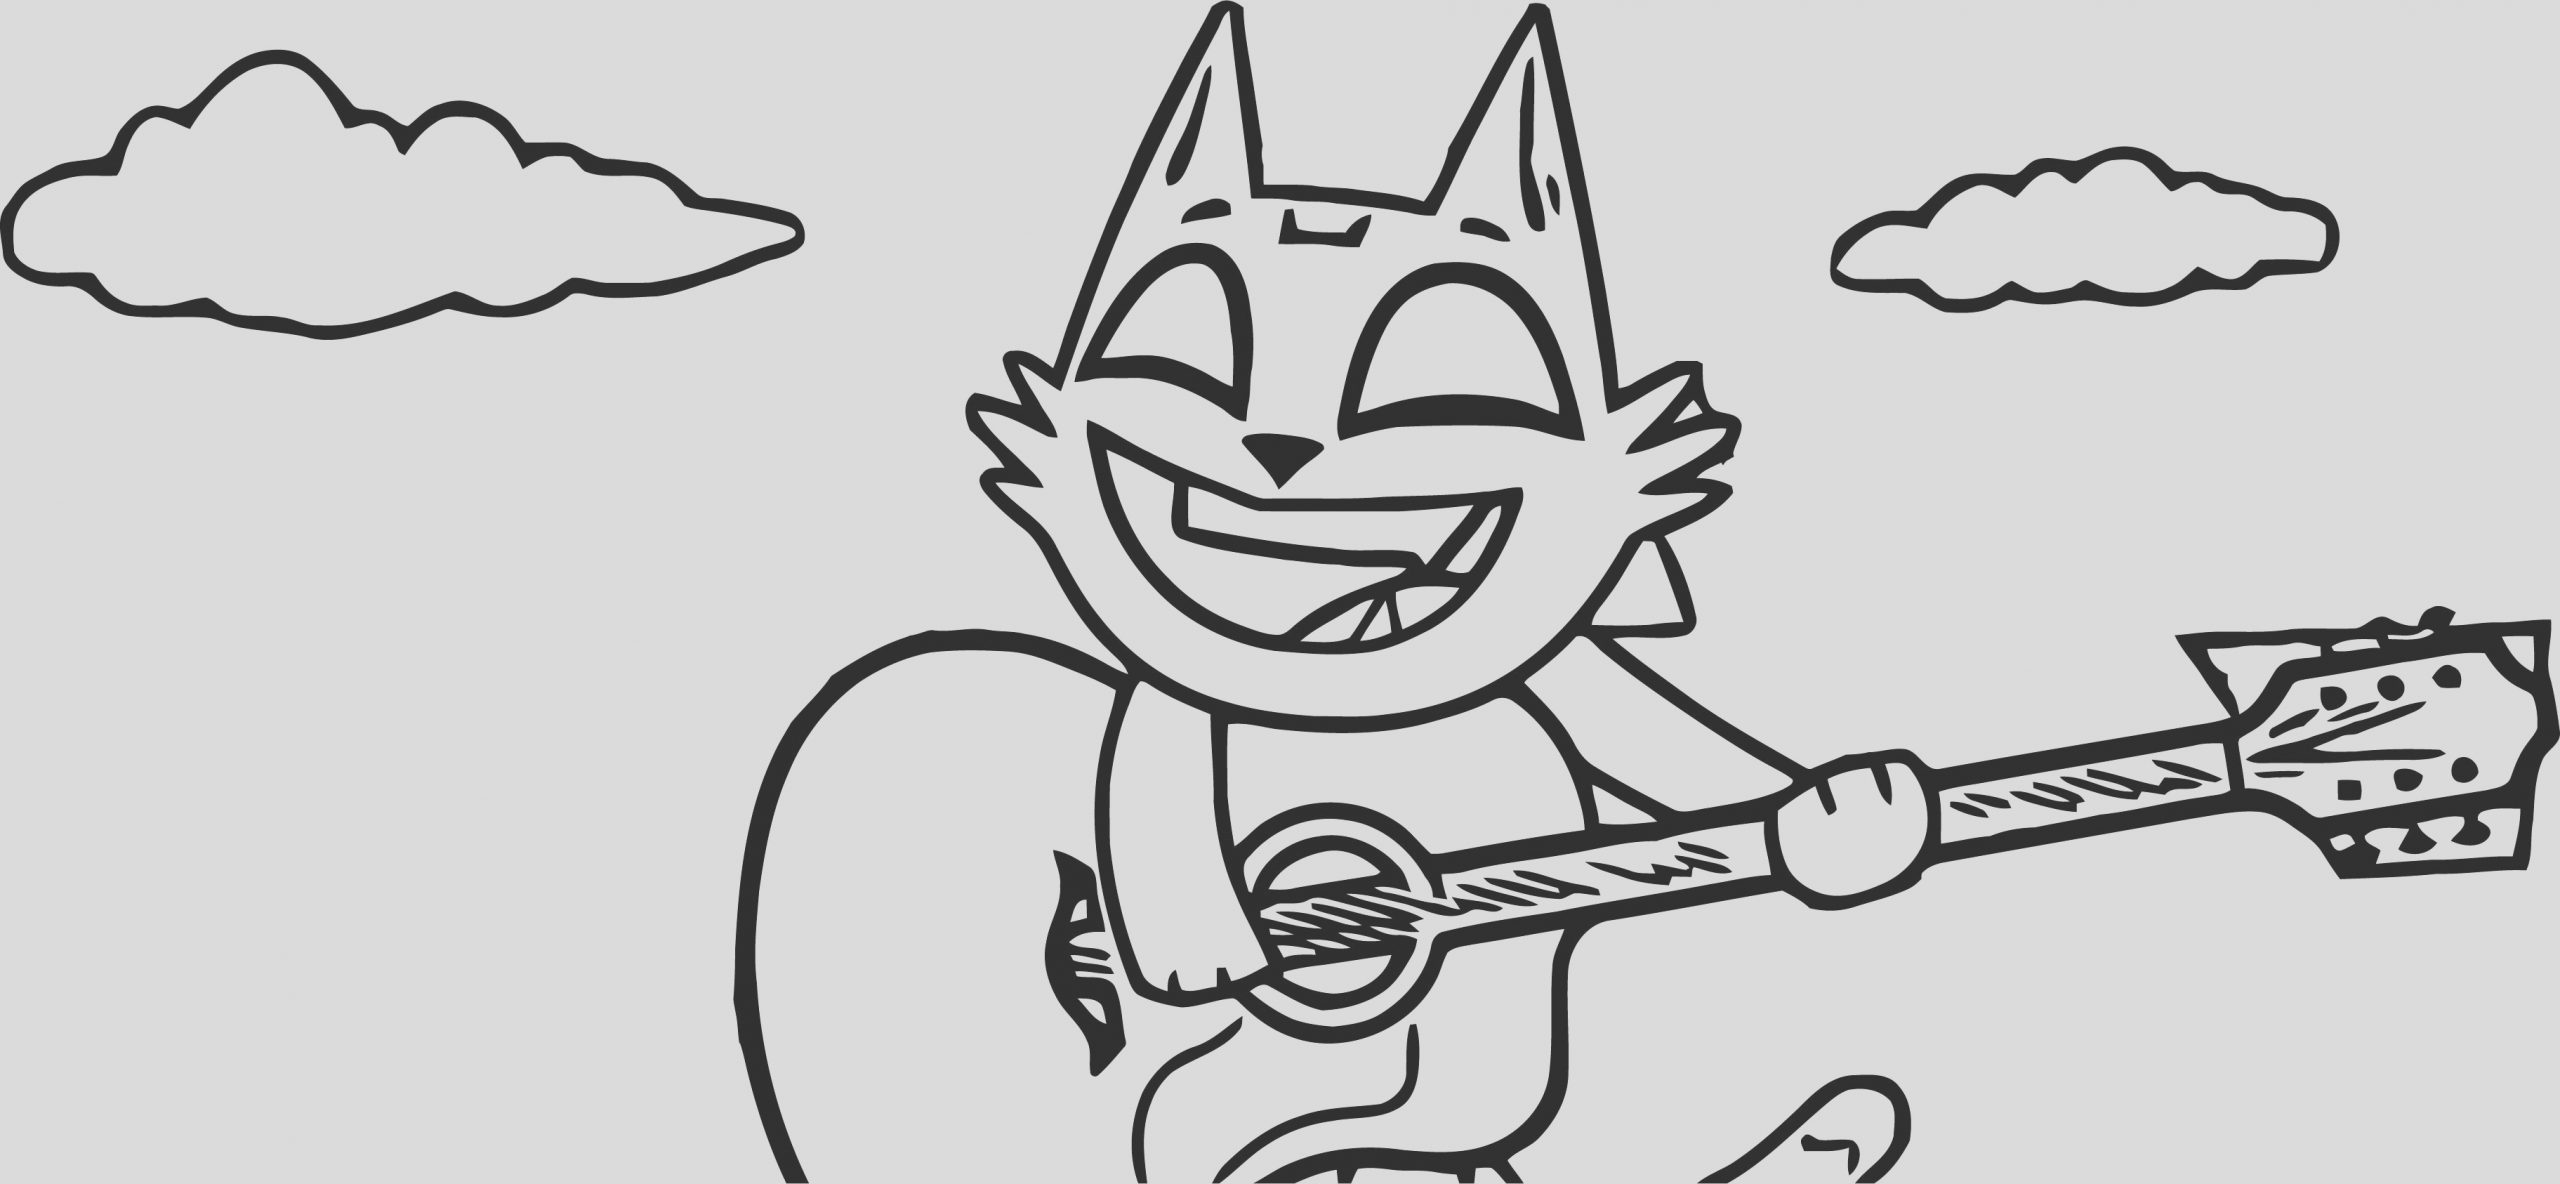 beast boy cat in front of lyric blocks coloring page